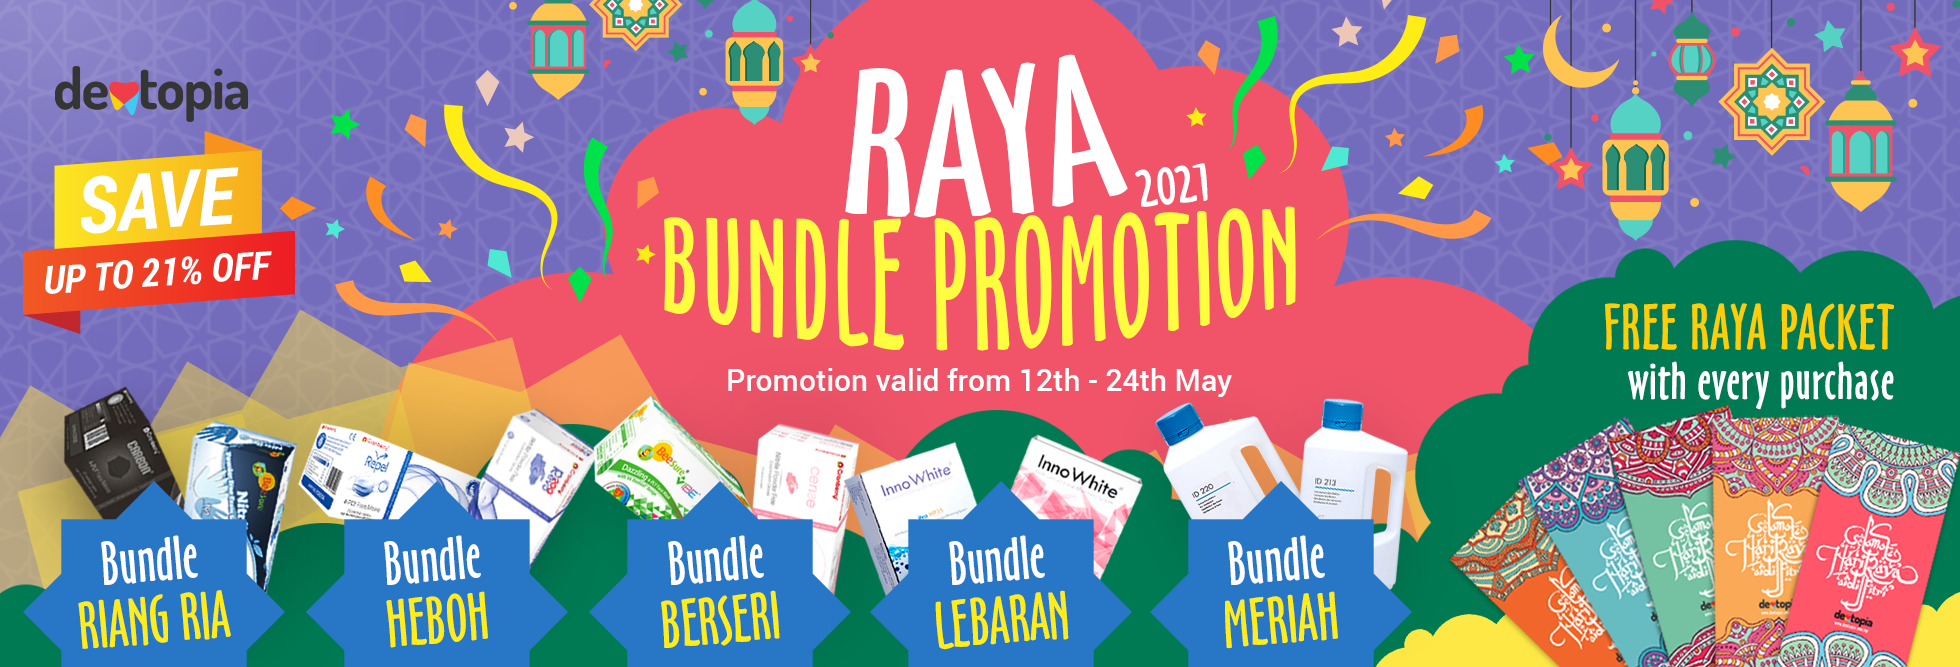 Raya Bundle Promotion 2021